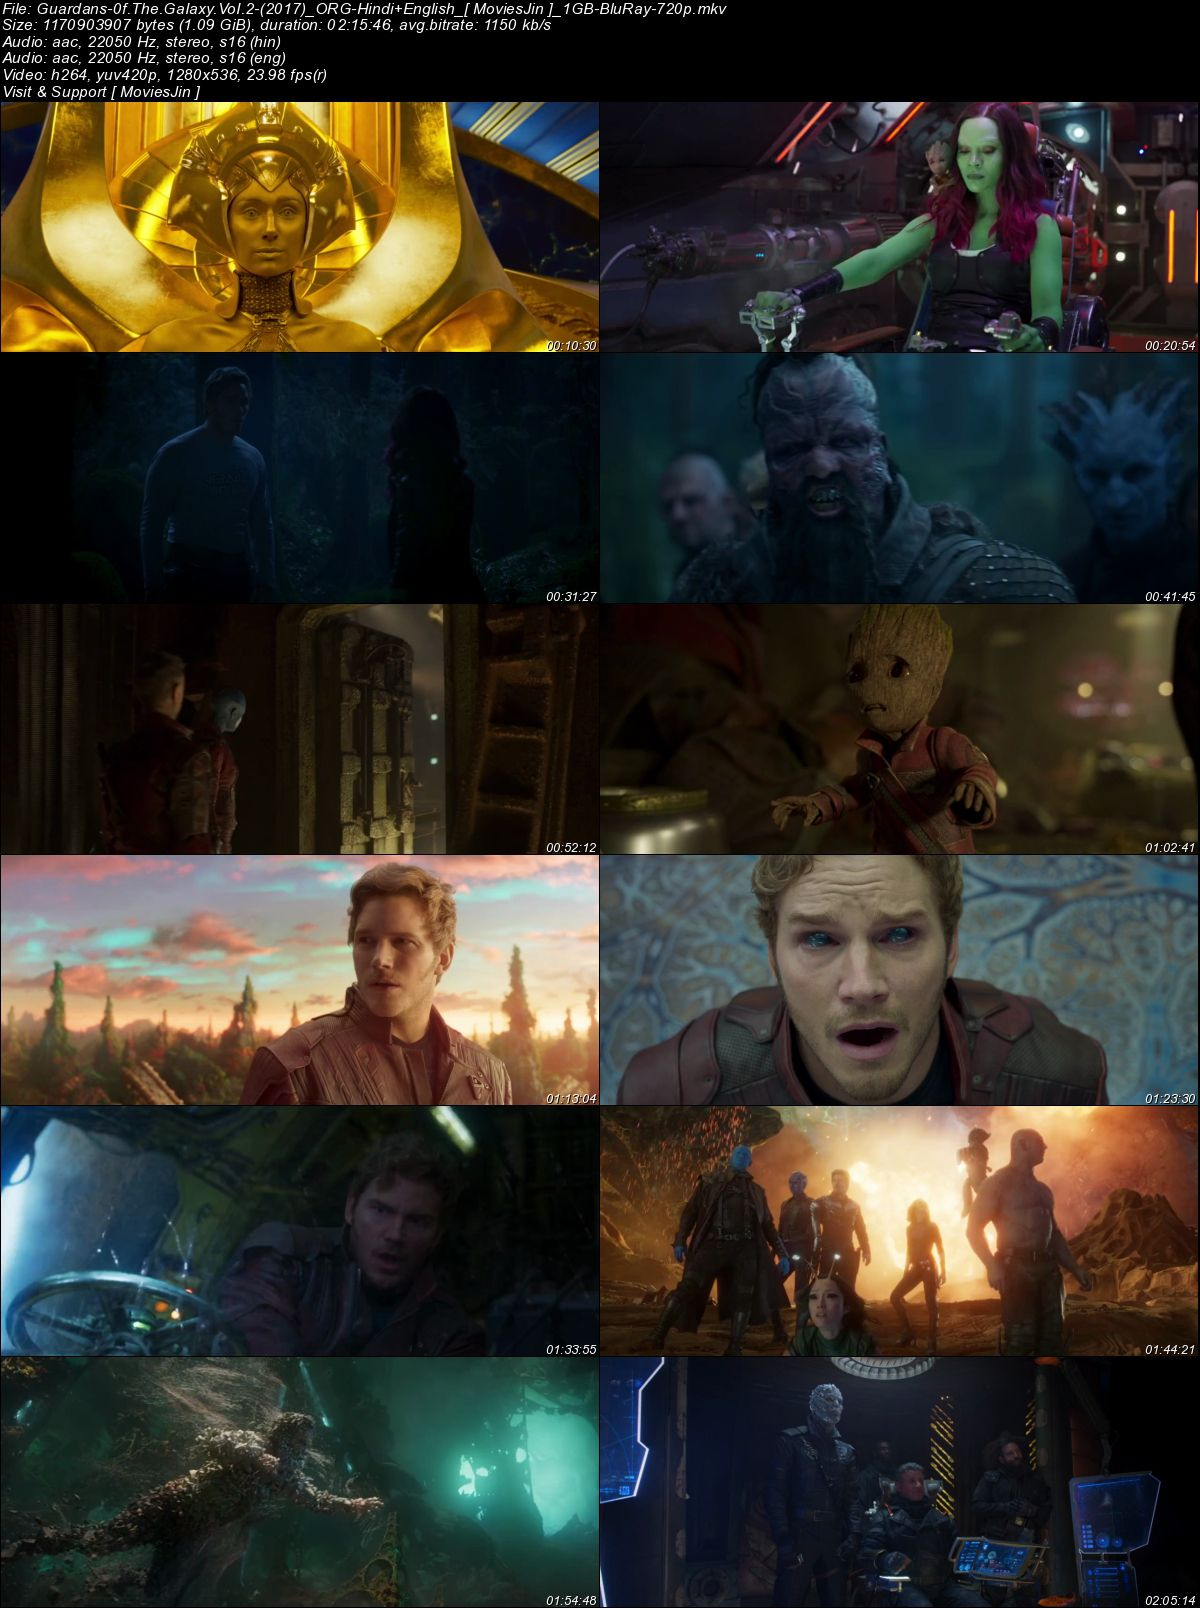 Watch Online Guardians Of The Galaxy Vol 2 2017 BRRip Hindi ORG Dual Audio 720p Full Movie Download 300mb Movies